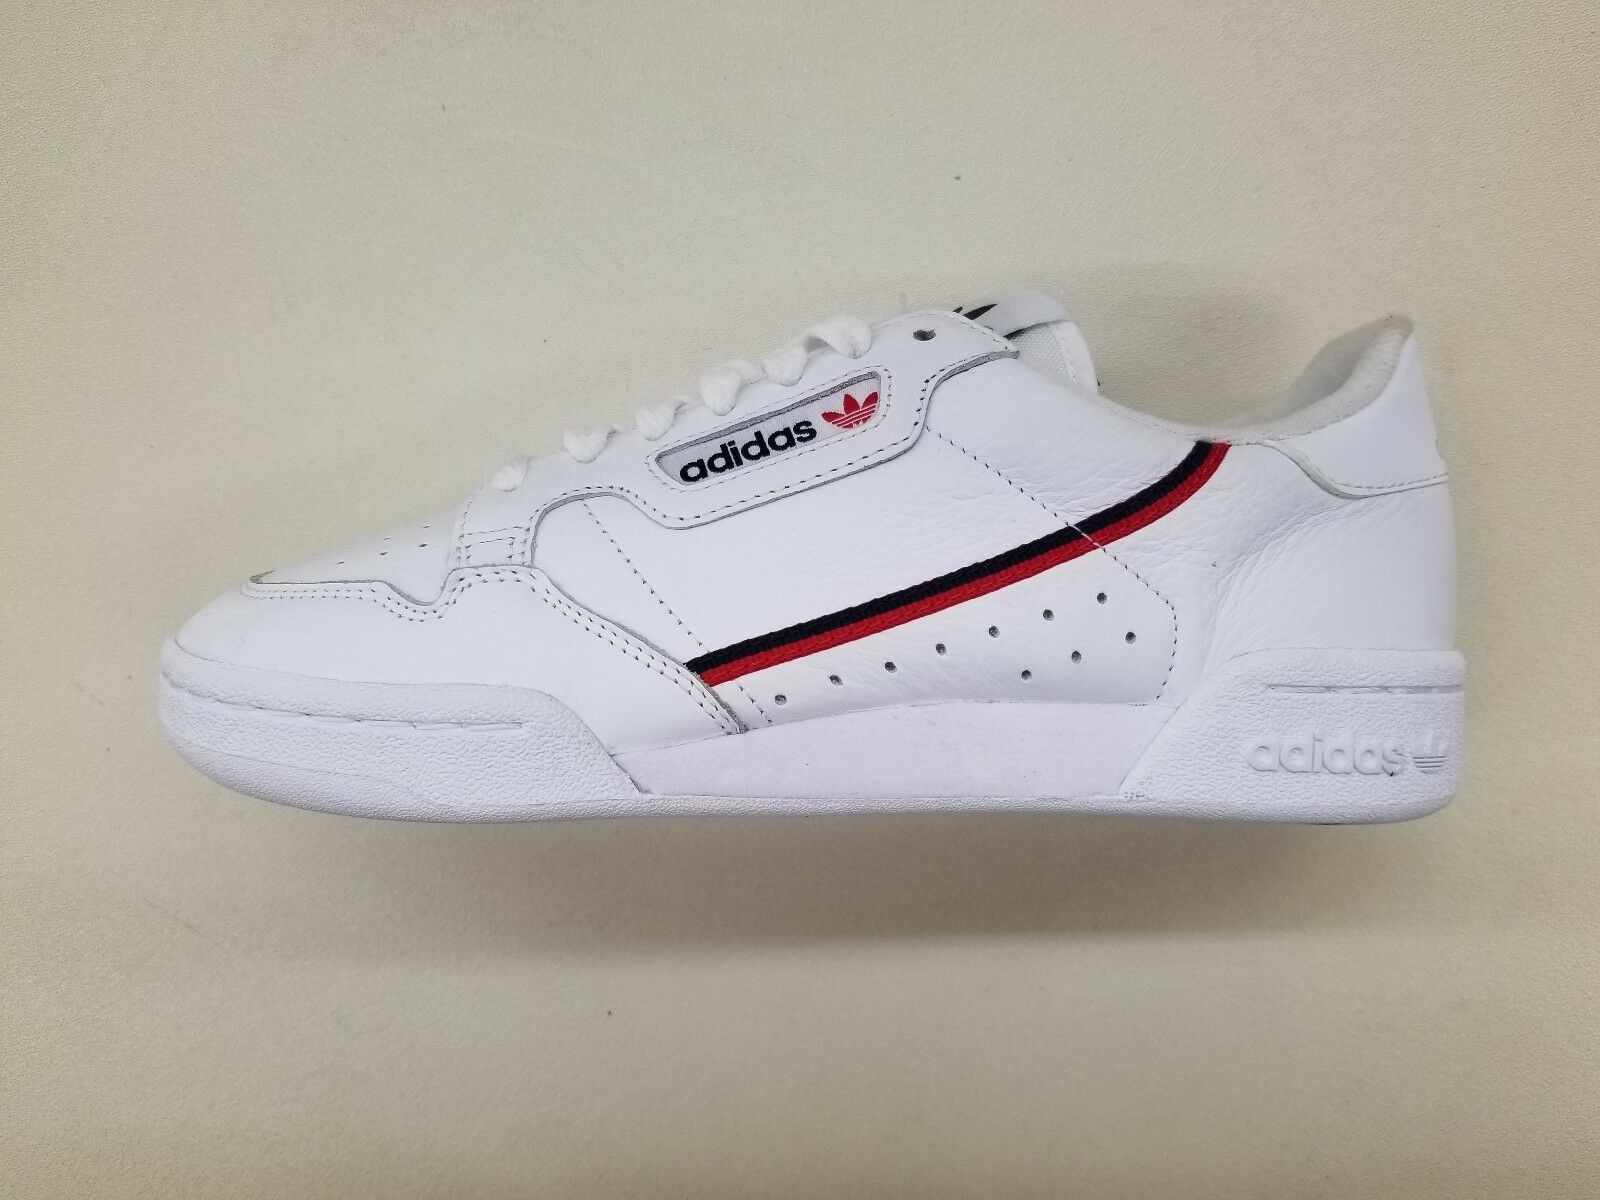 ADIDAS ORIGINALS CONTINENTAL 80 WHITE NAVY blueE RED MENS SIZE SNEAKERS B41674